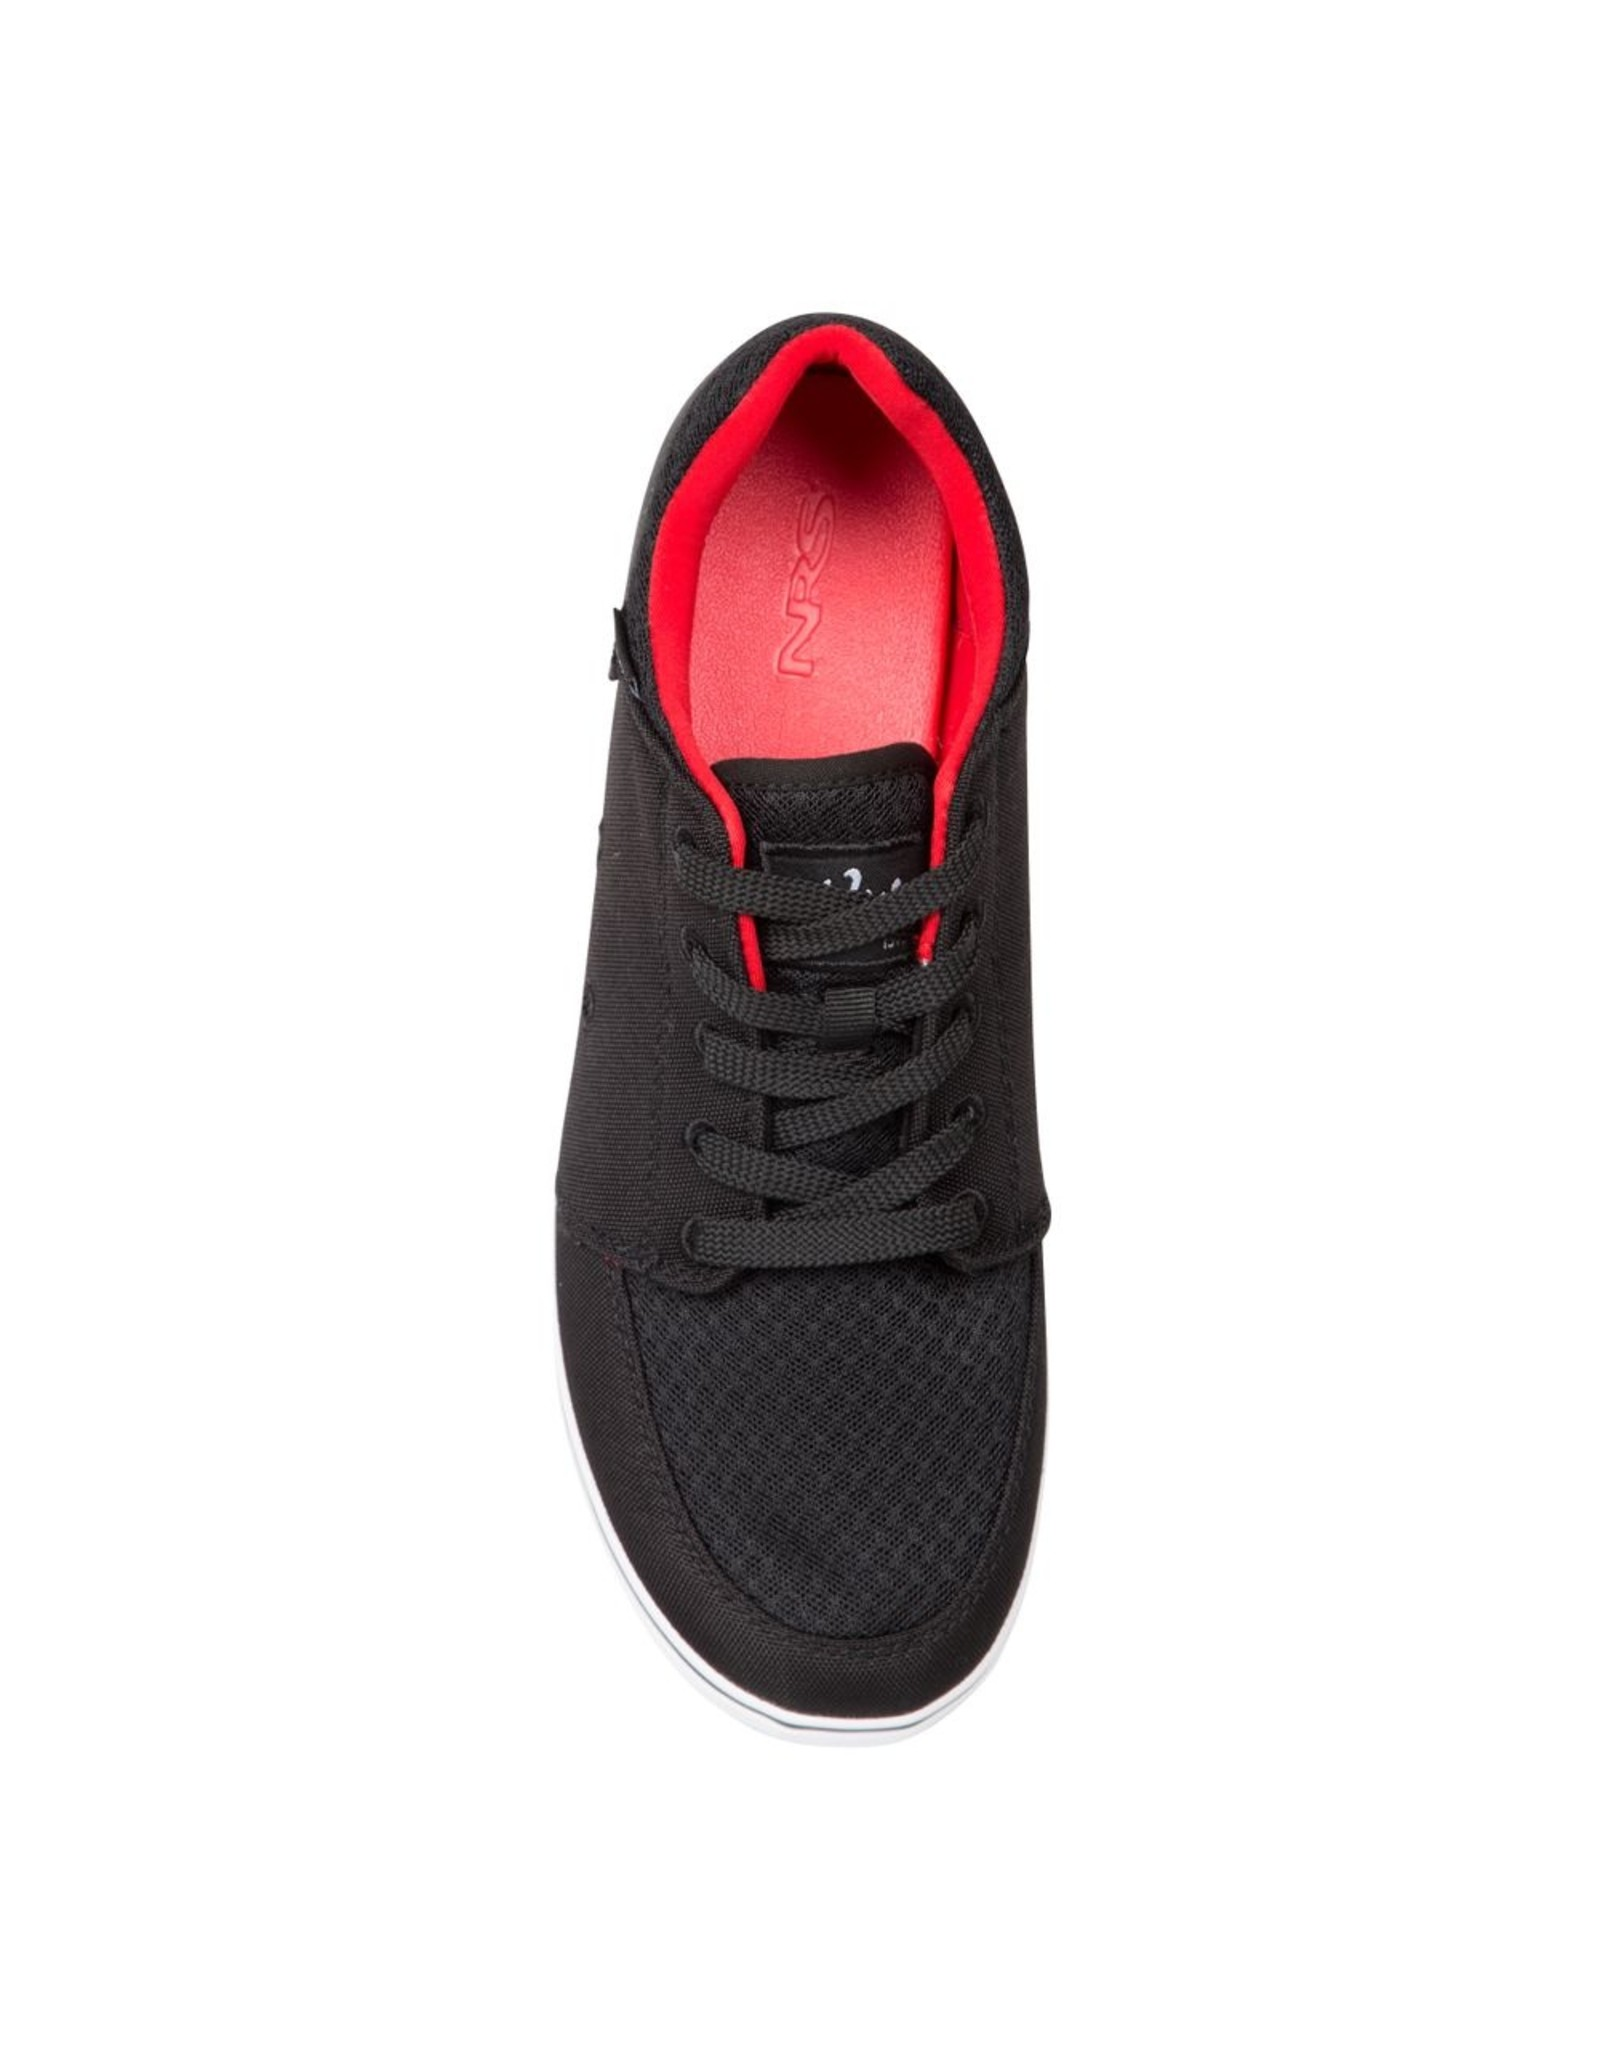 NRS NRS Men's Vibe Water Shoes